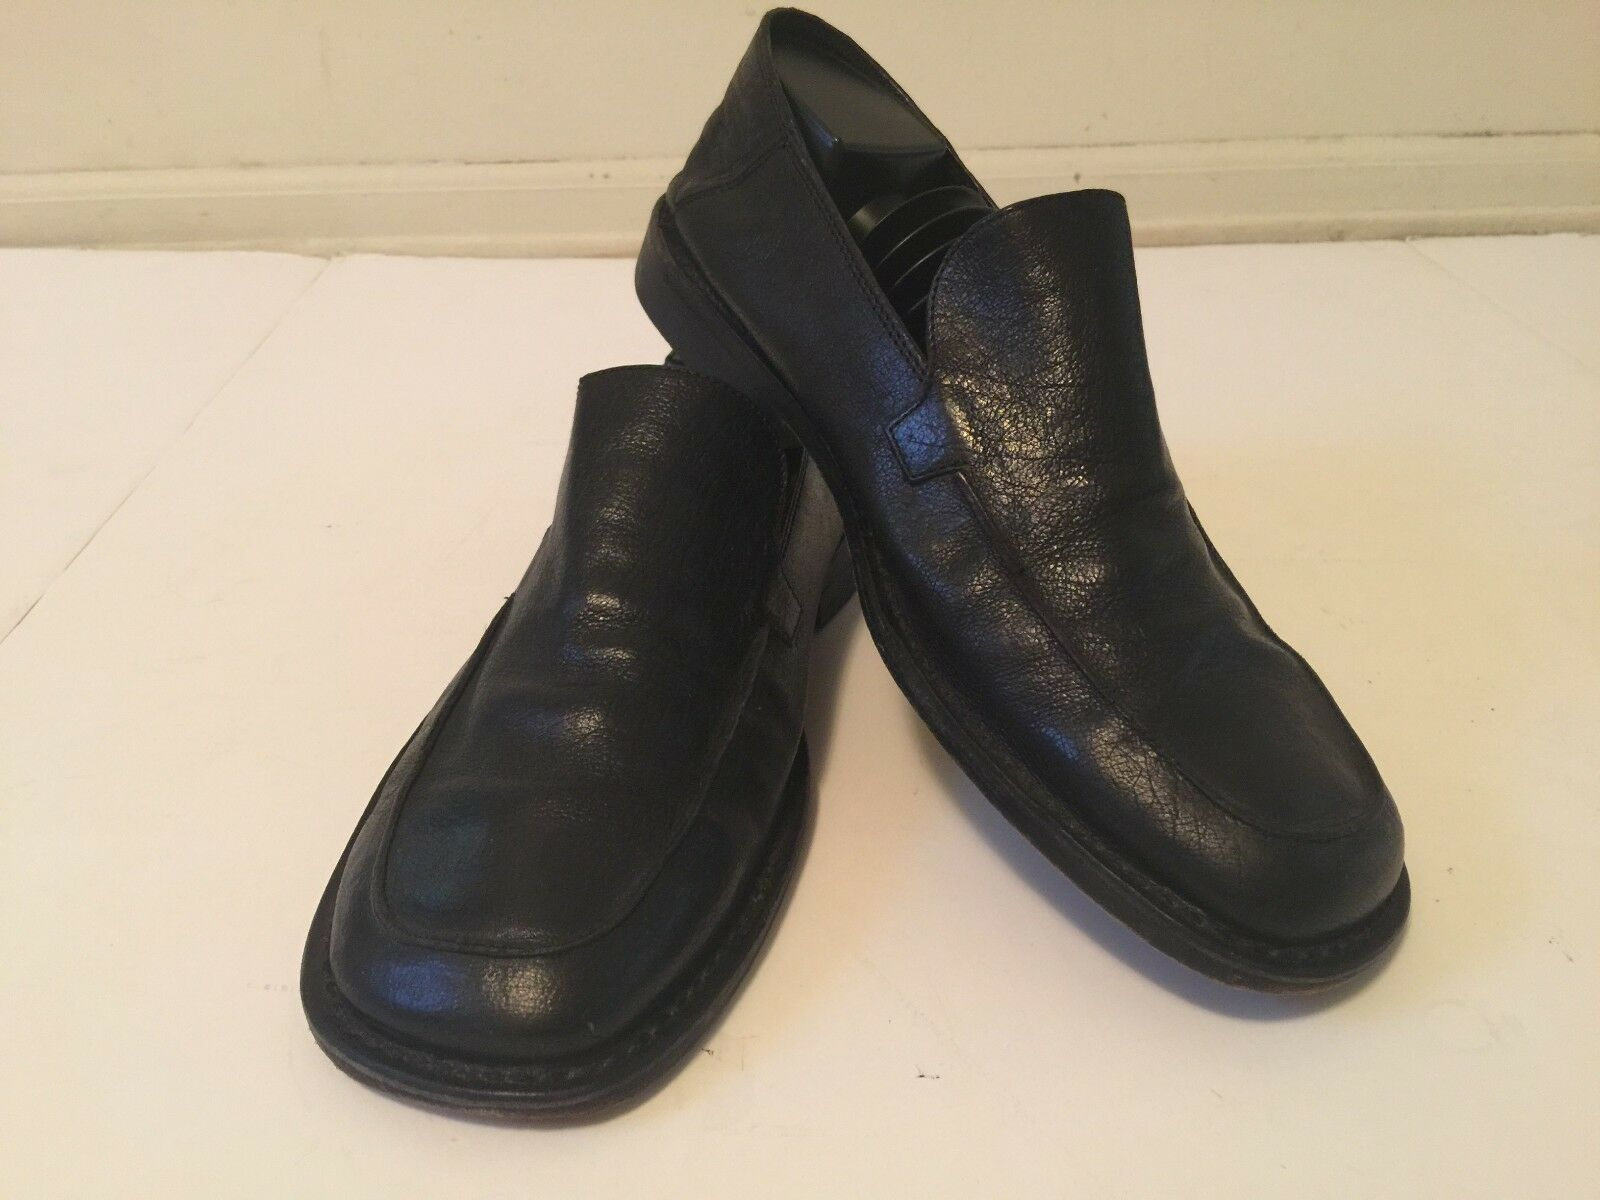 J.Crew Mens Black Leather Slip-On Loafers Shoes (Sz 10 M)